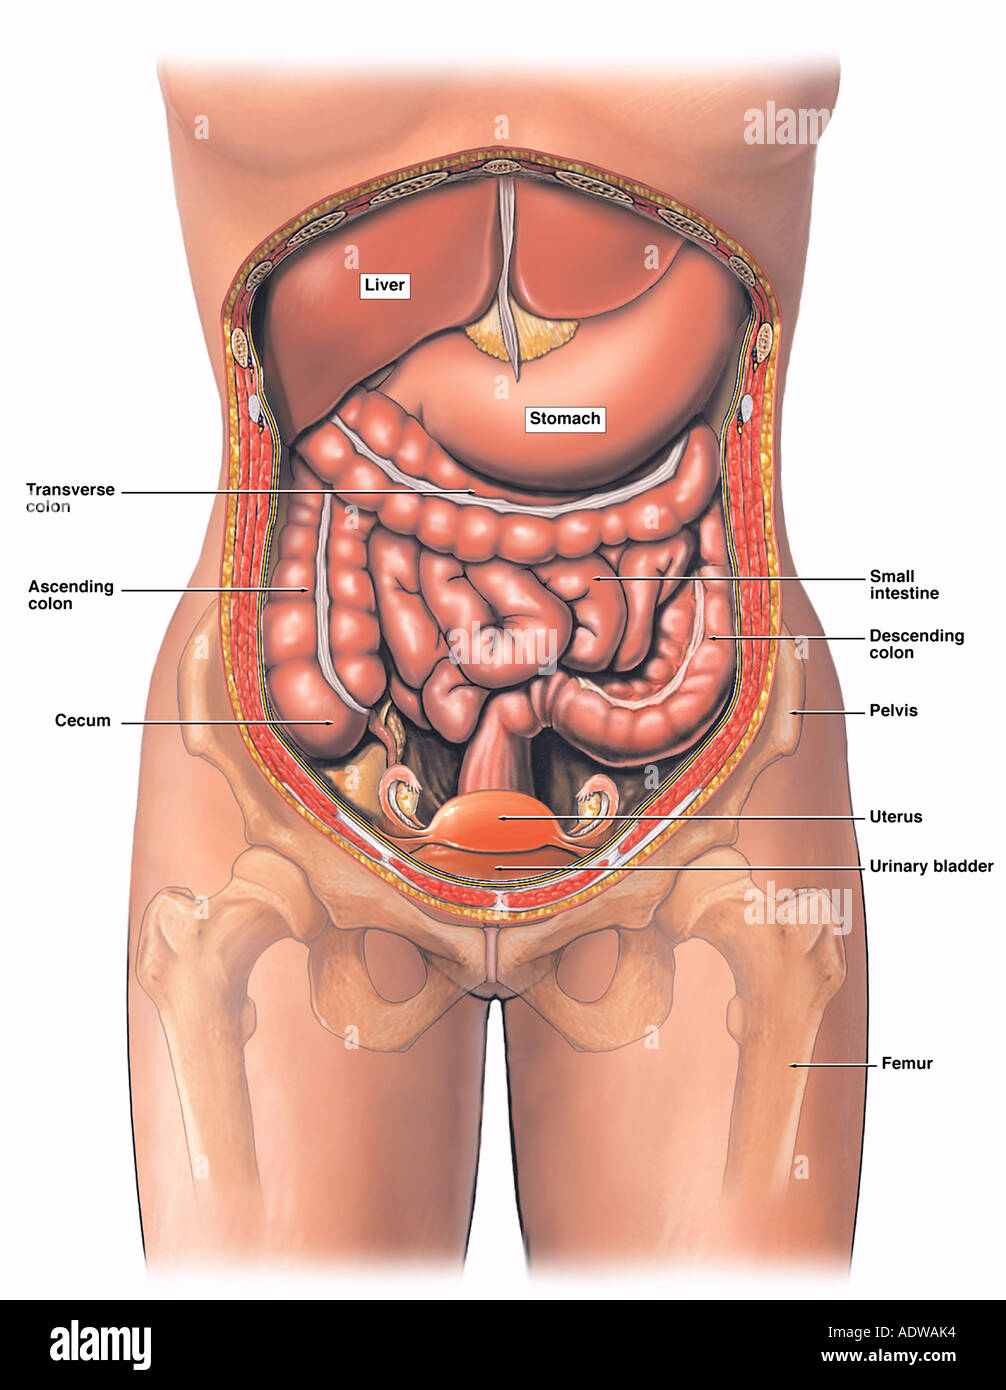 Anatomy Of The Female Abdomen And Pelvis Stock Photo 7712947 Alamy